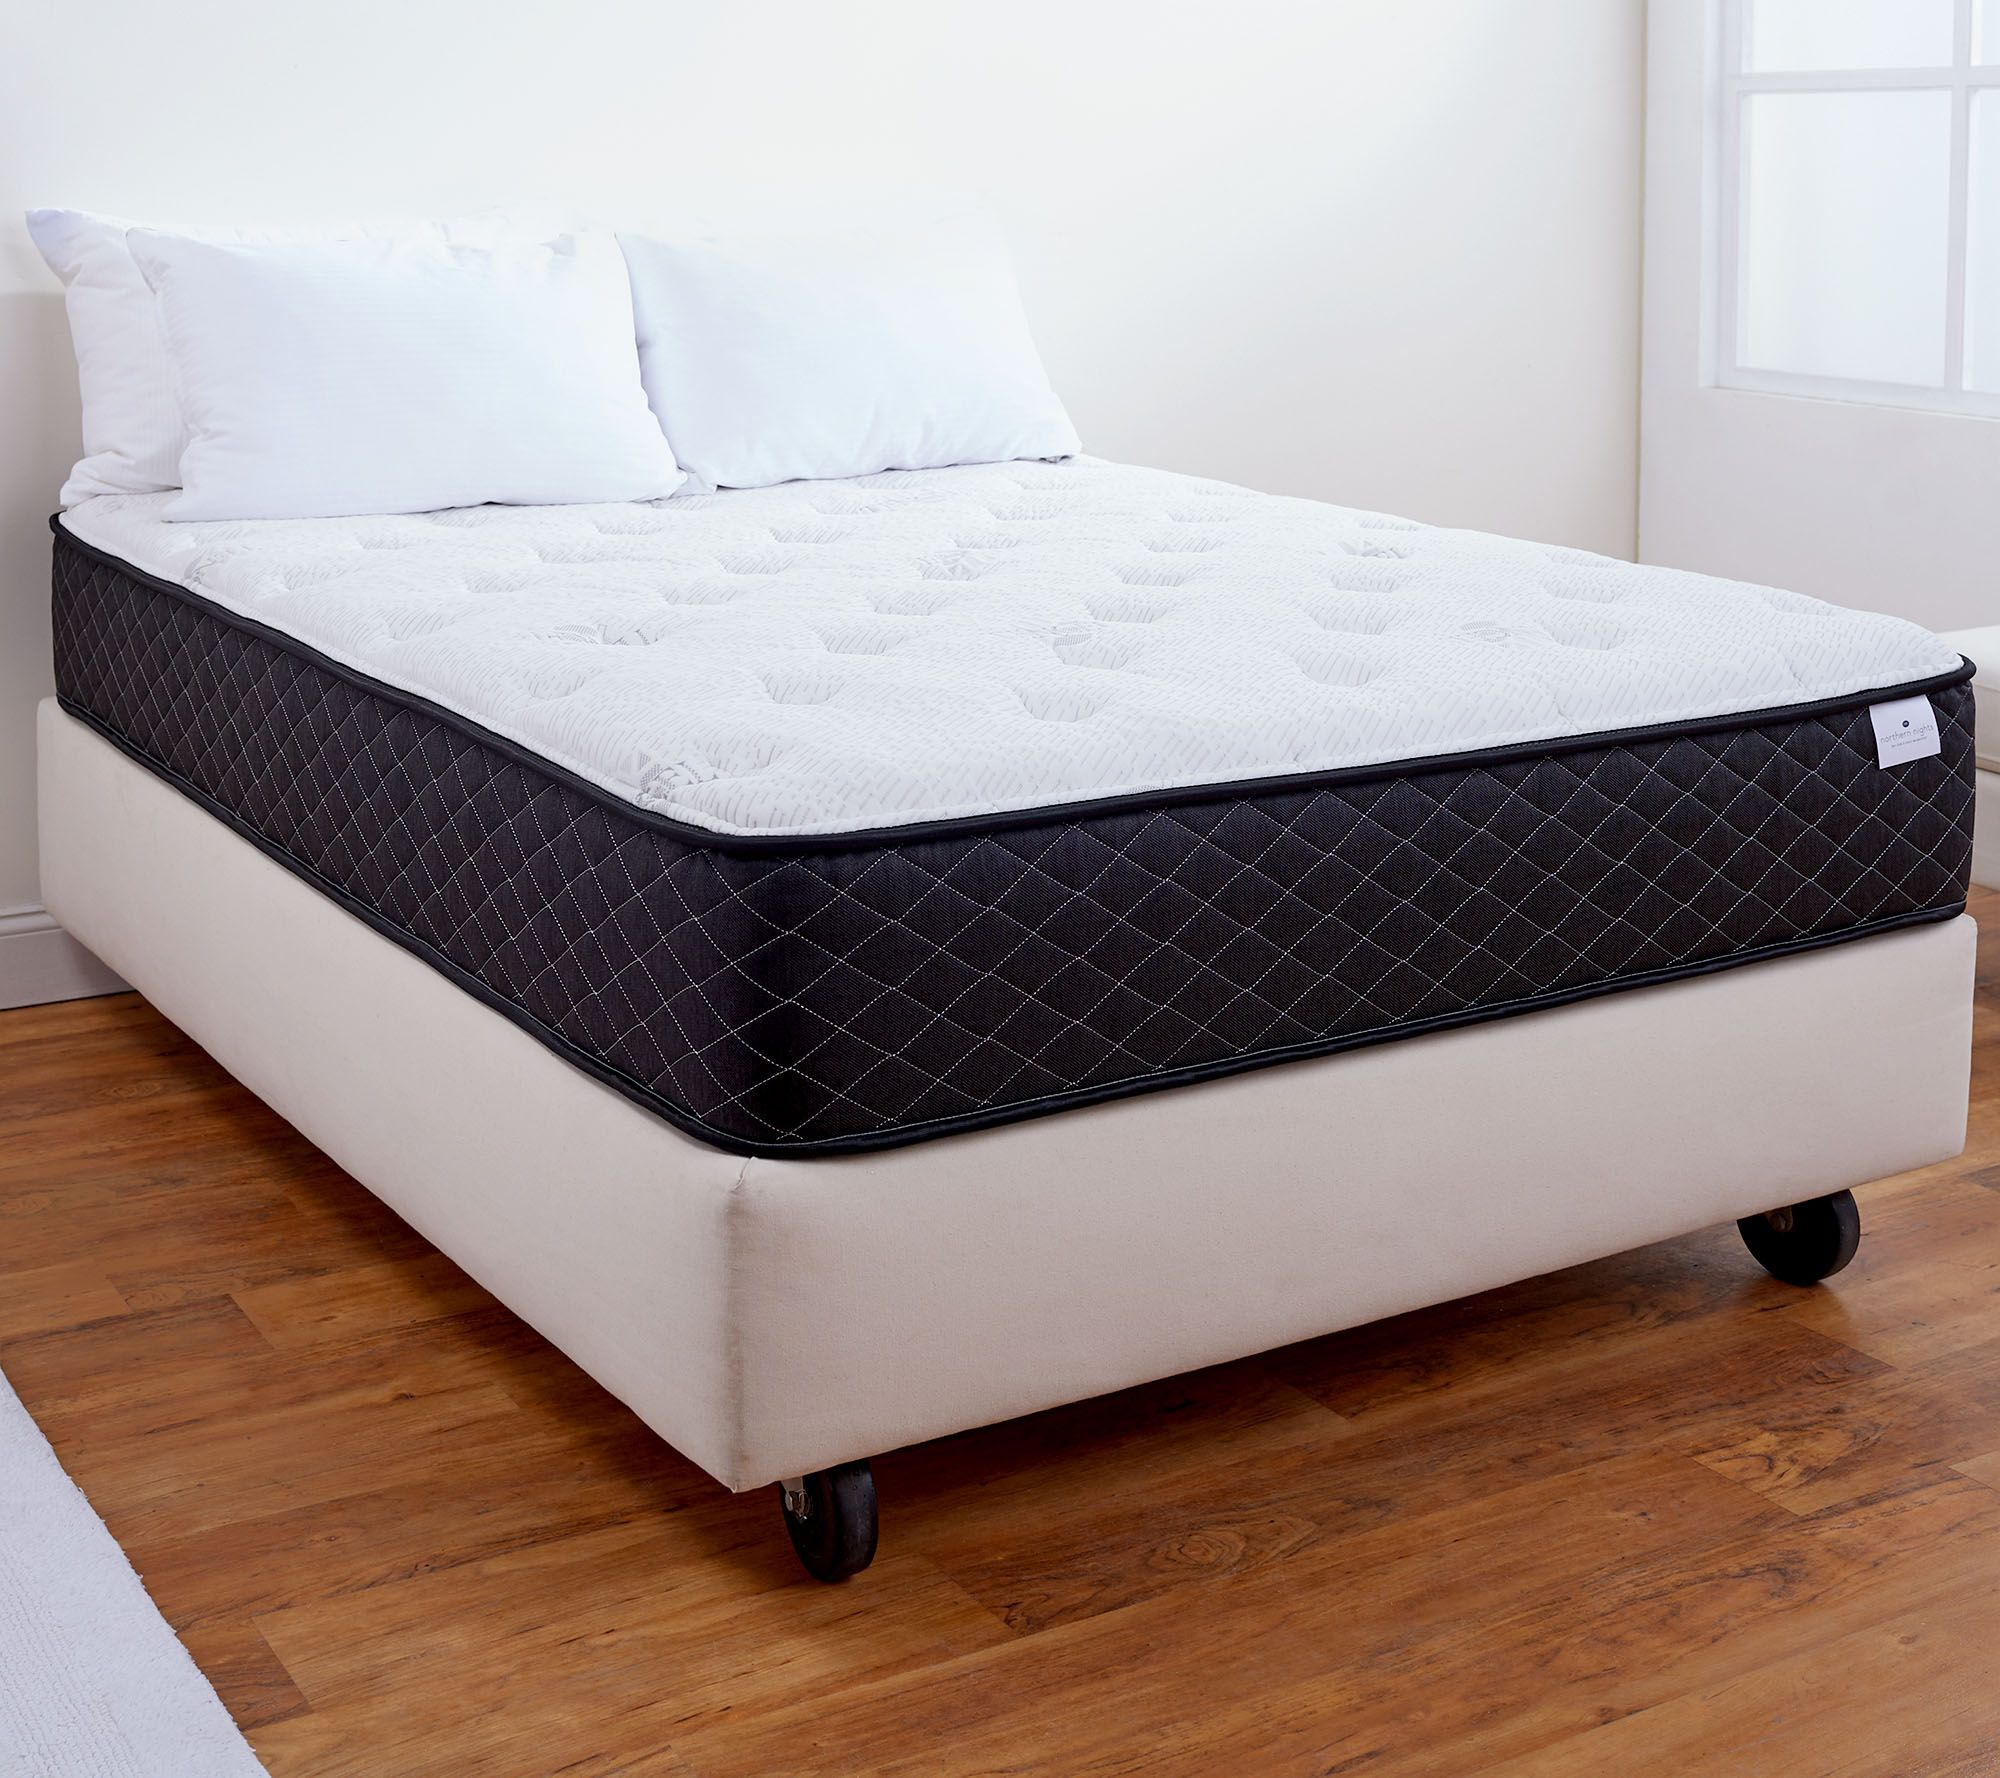 Expanded Queen Mattress Northern Nights Royalty 10 5